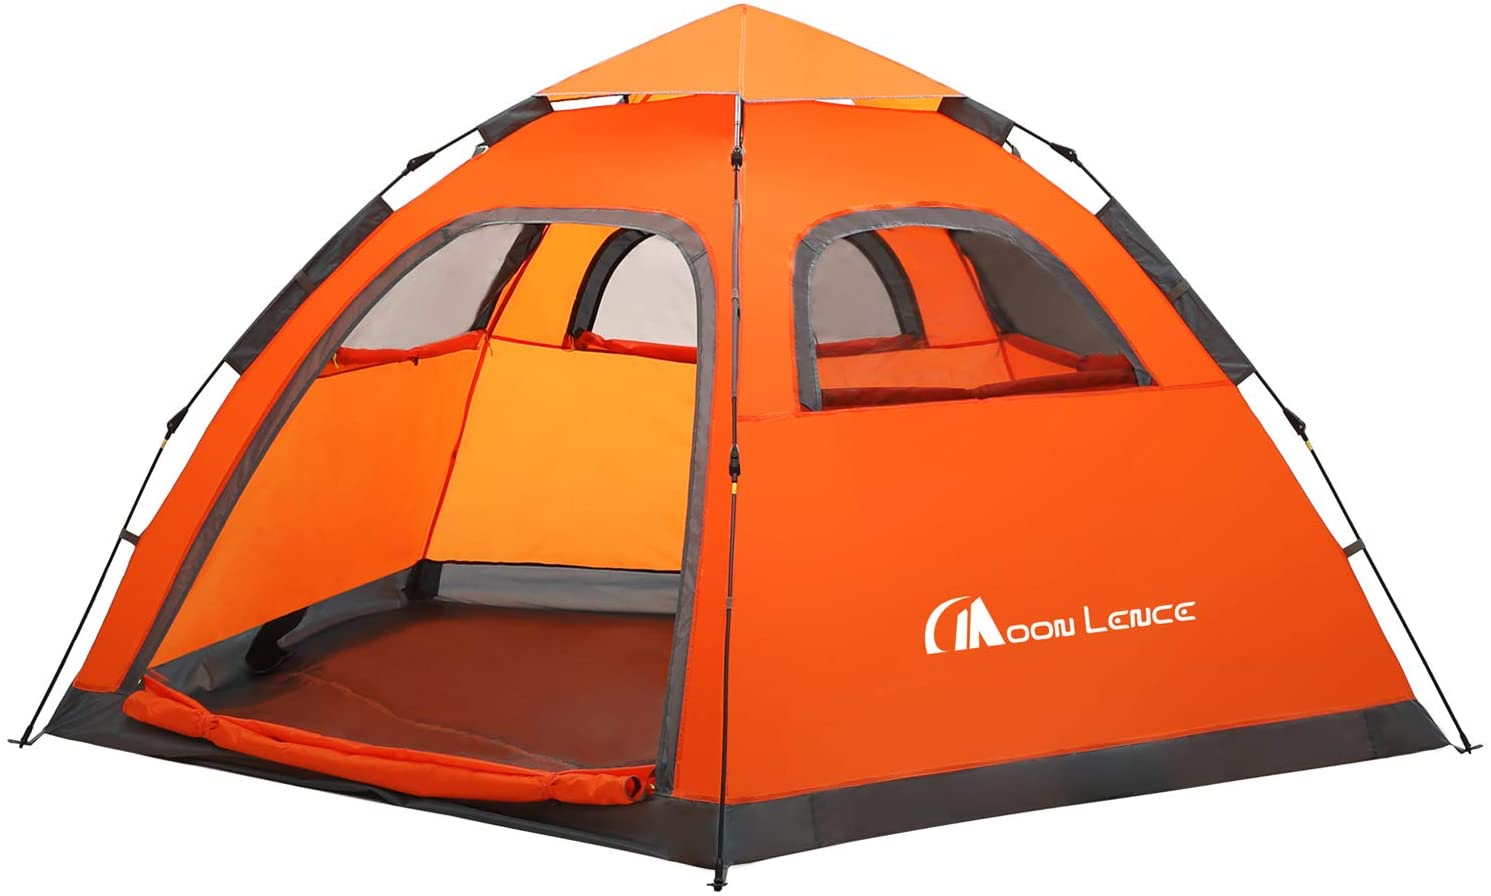 Max 45% OFF Max 53% OFF MOON LENCE Instant Pop Up Tent Po Family Camping Person 4-5